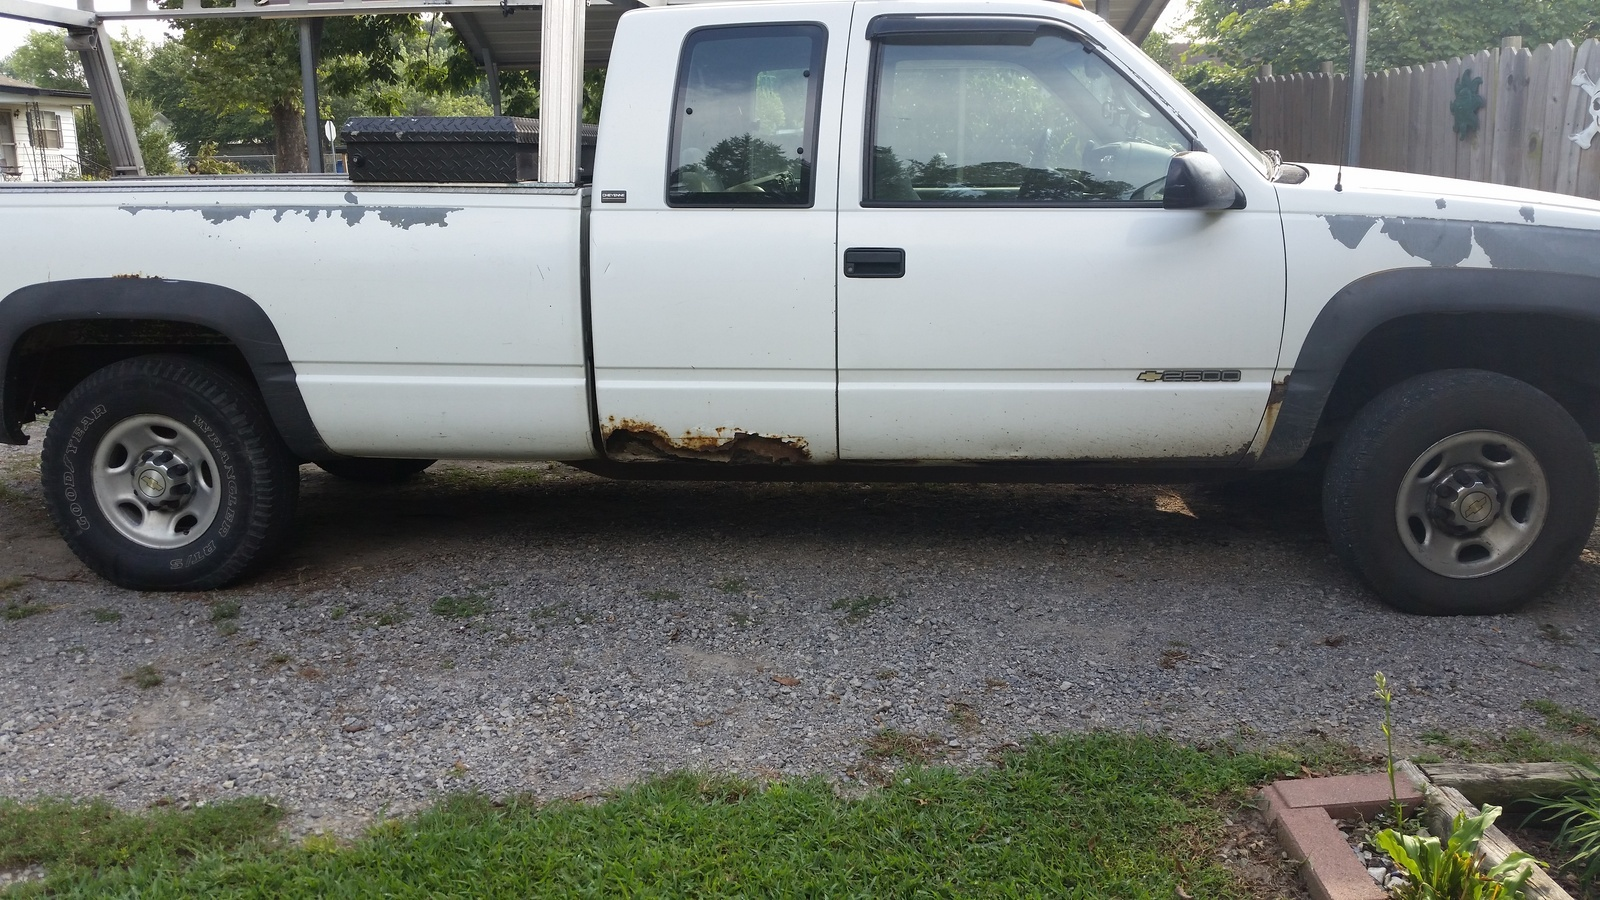 All Chevy 95 chevy 3500 diesel : Chevrolet C/K 2500 Questions - what other frames will fit under a ...